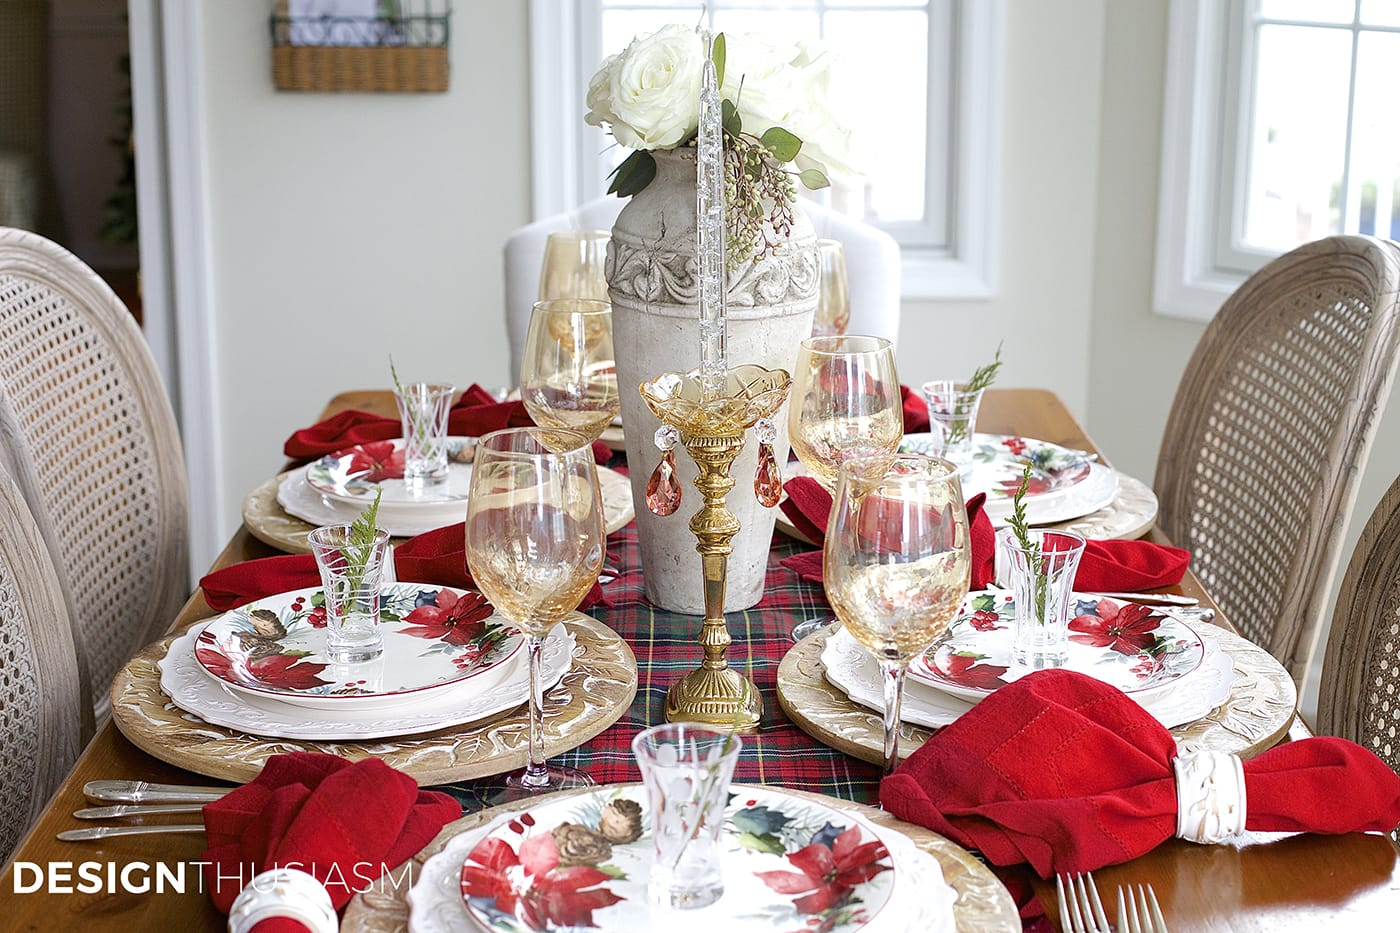 How To Create A Cozy Christmas Tablescape With Floral And